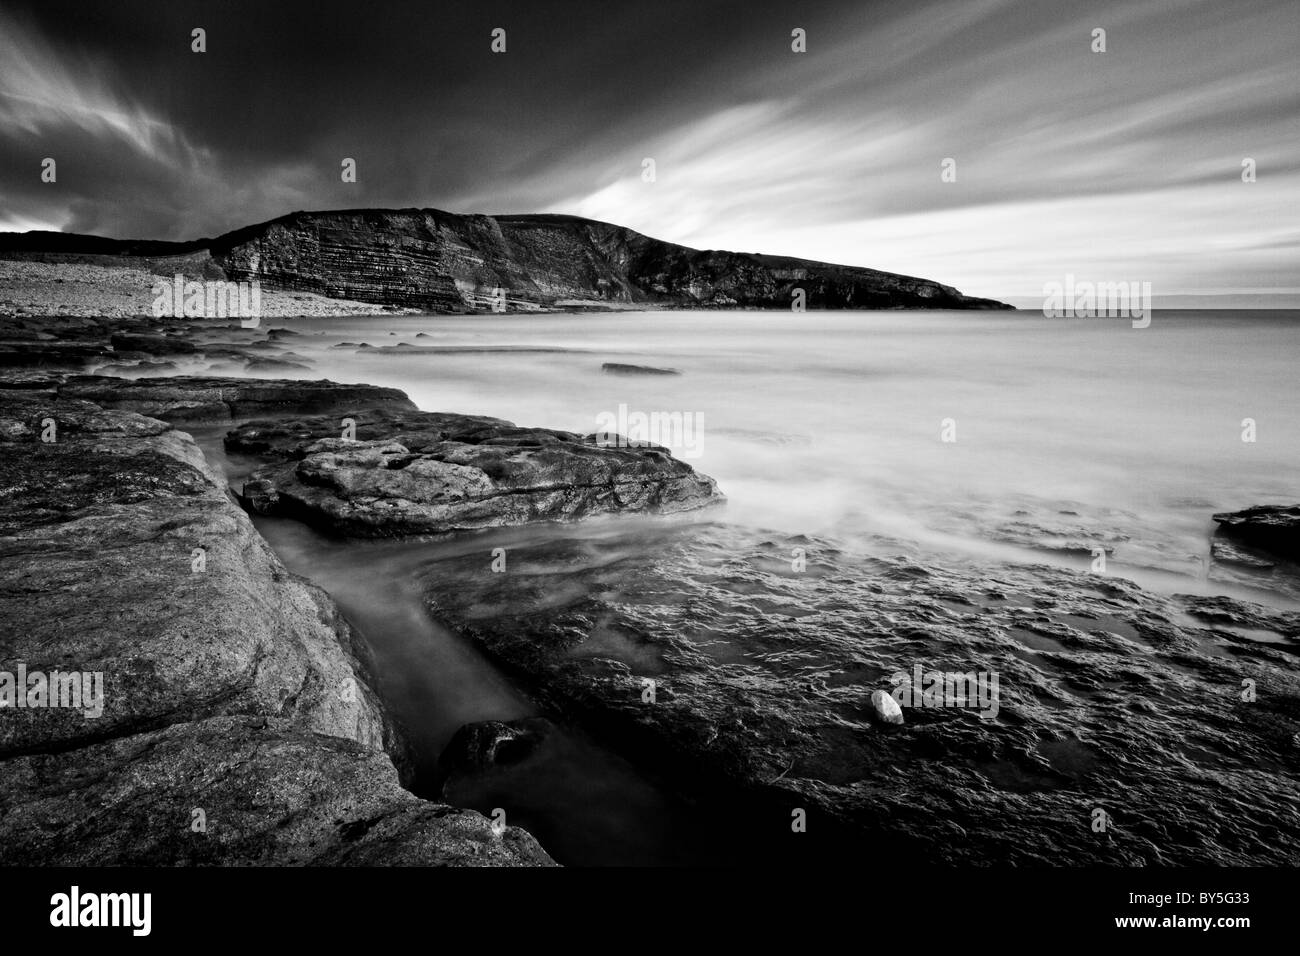 Long exposure of Dunraven Bay in black and white - Stock Image